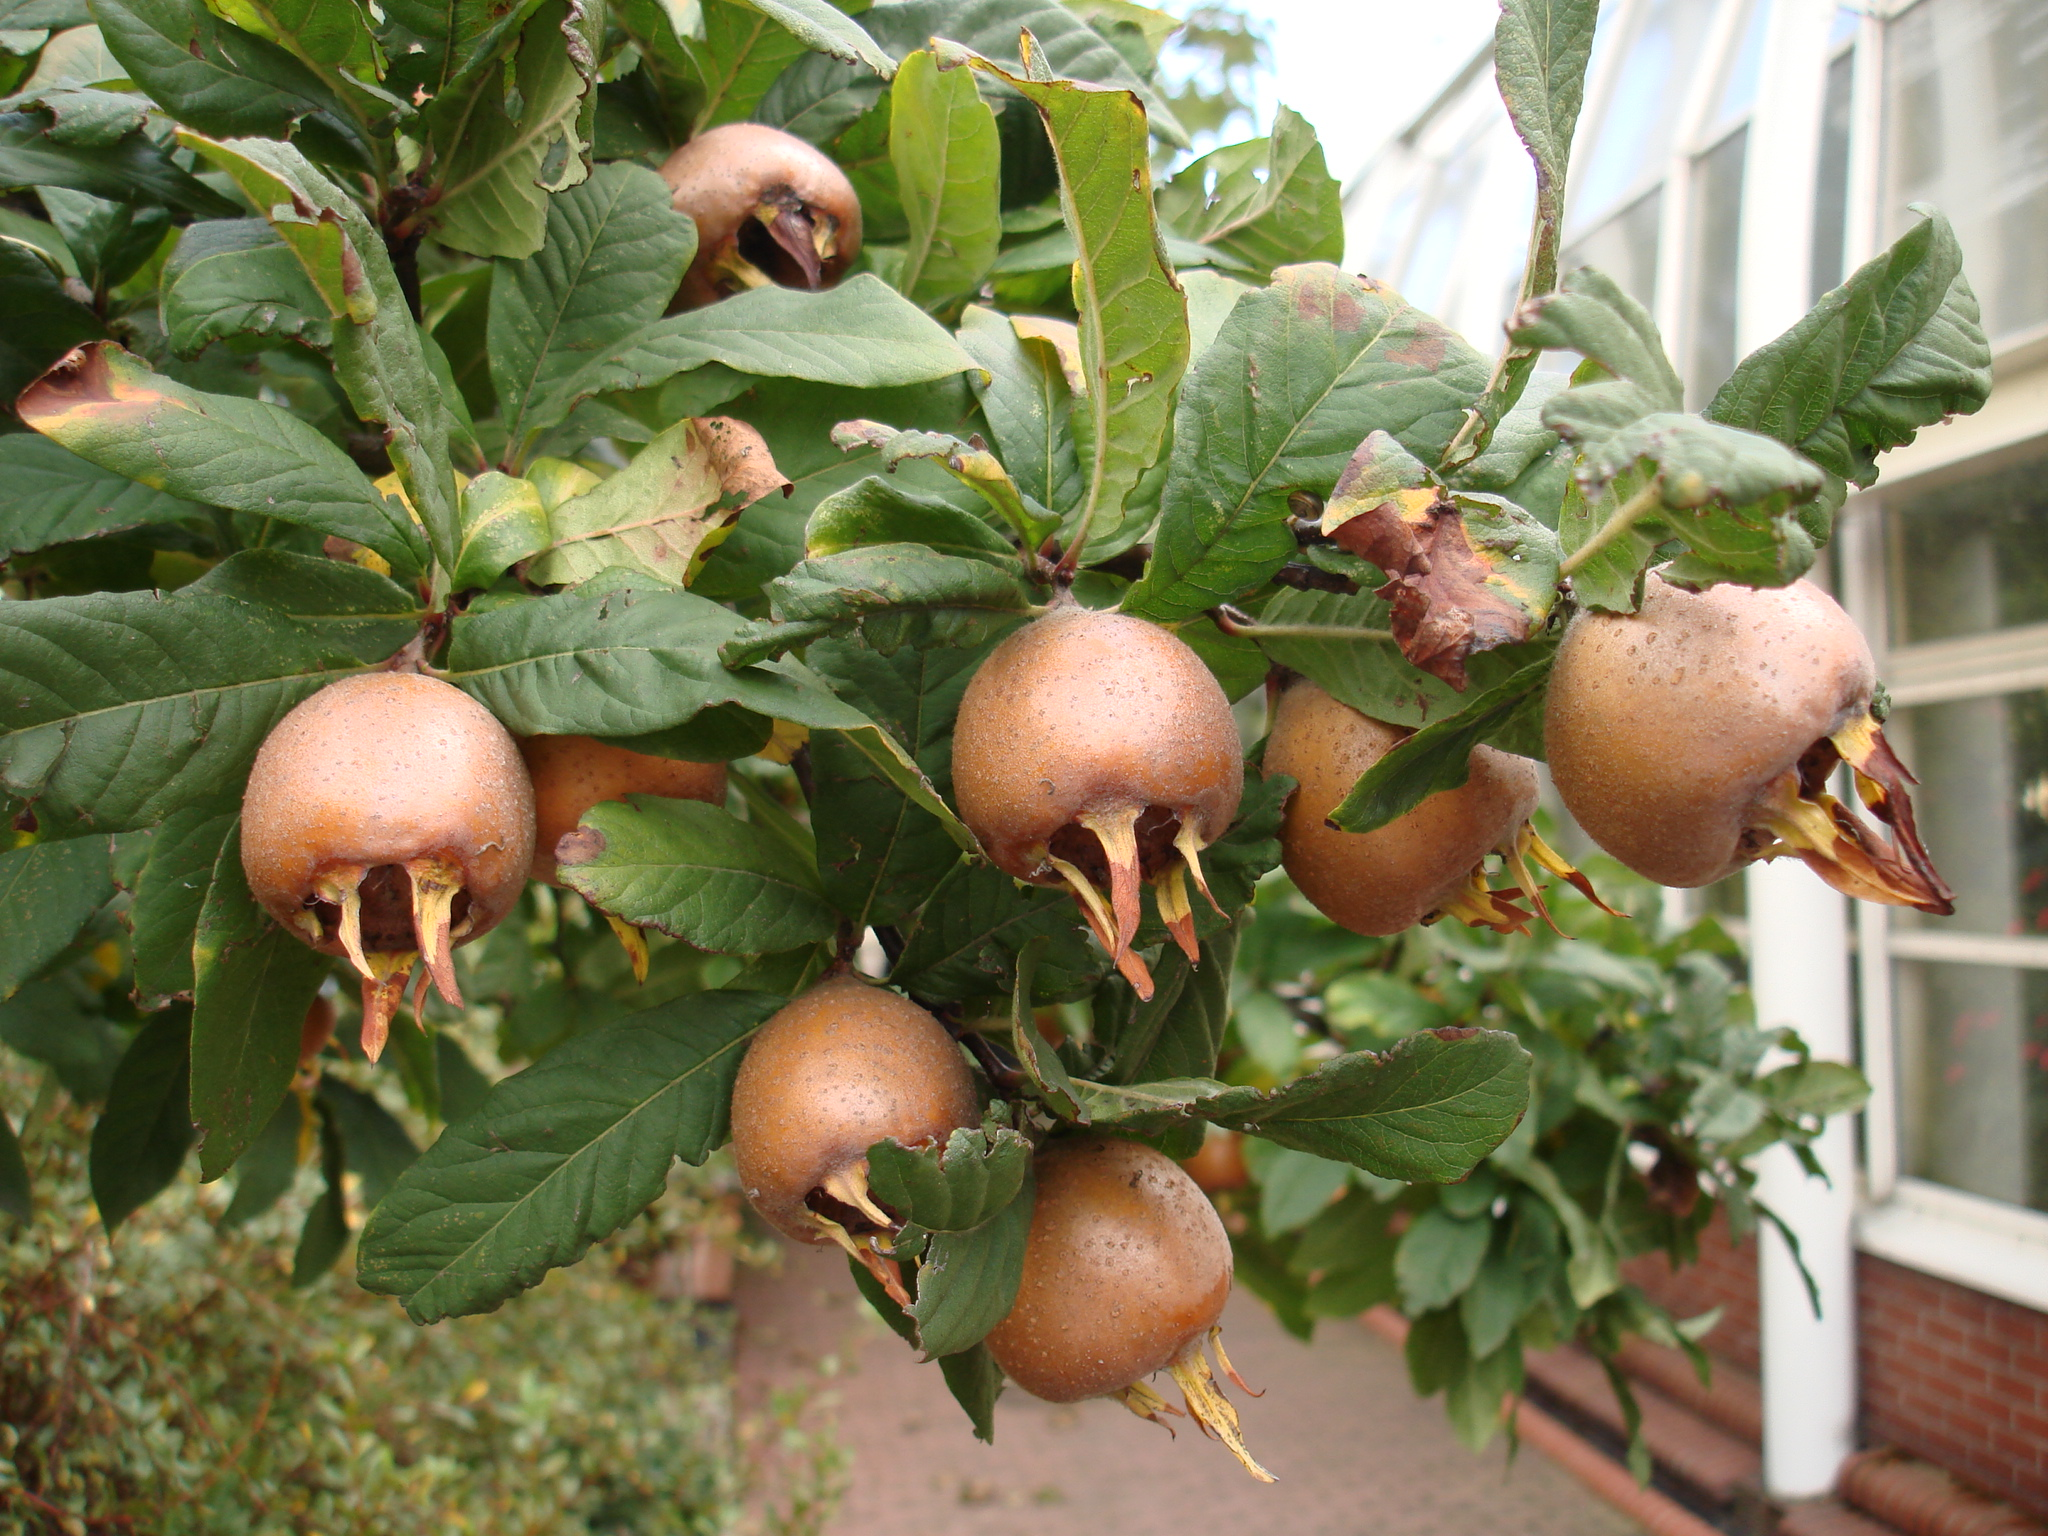 mespilus germanica Nottingham